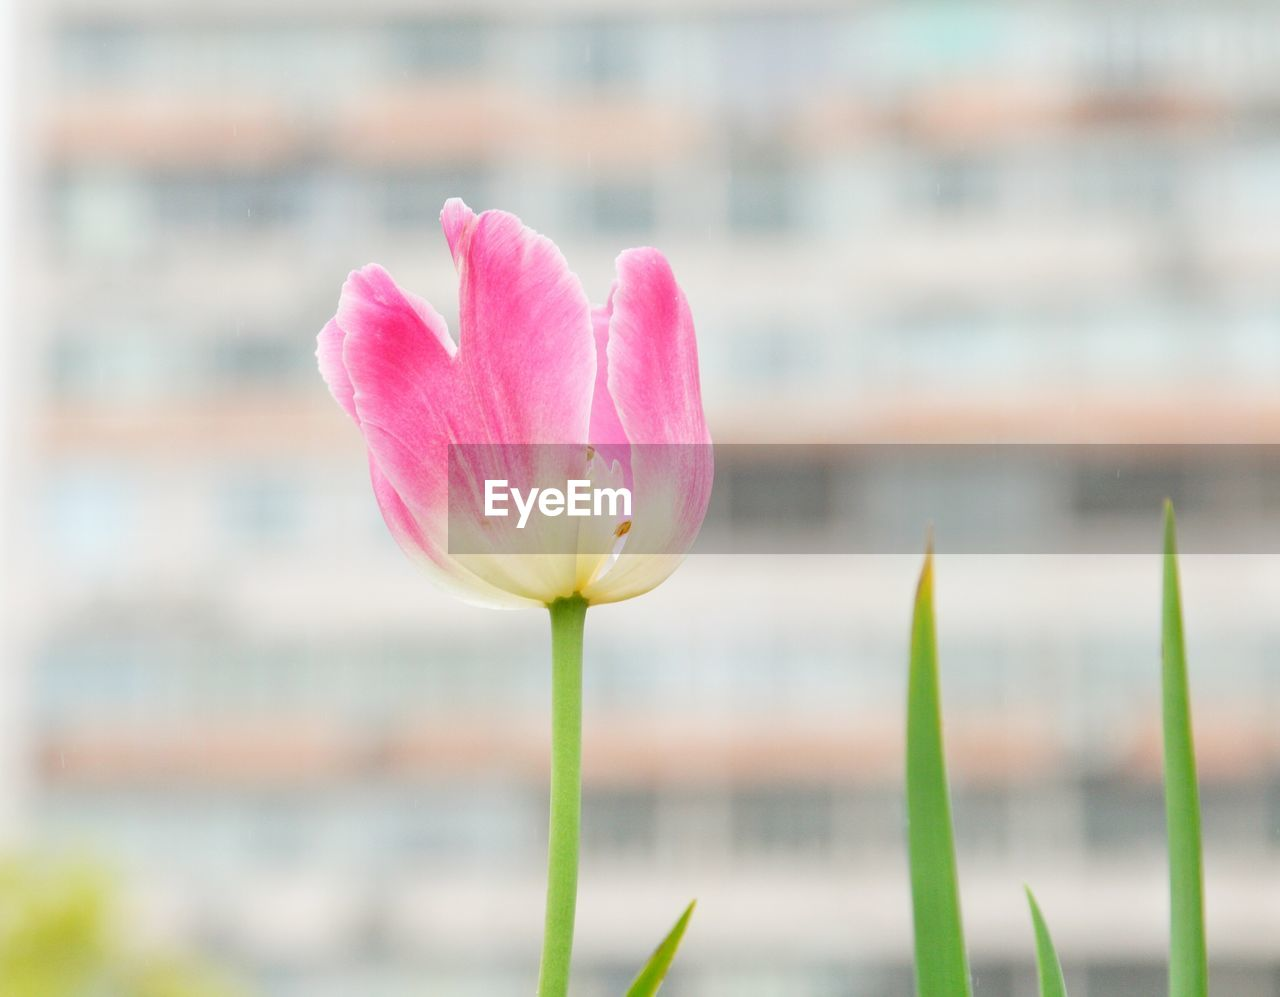 flower, growth, nature, petal, beauty in nature, pink color, fragility, plant, flower head, blooming, freshness, focus on foreground, close-up, outdoors, no people, day